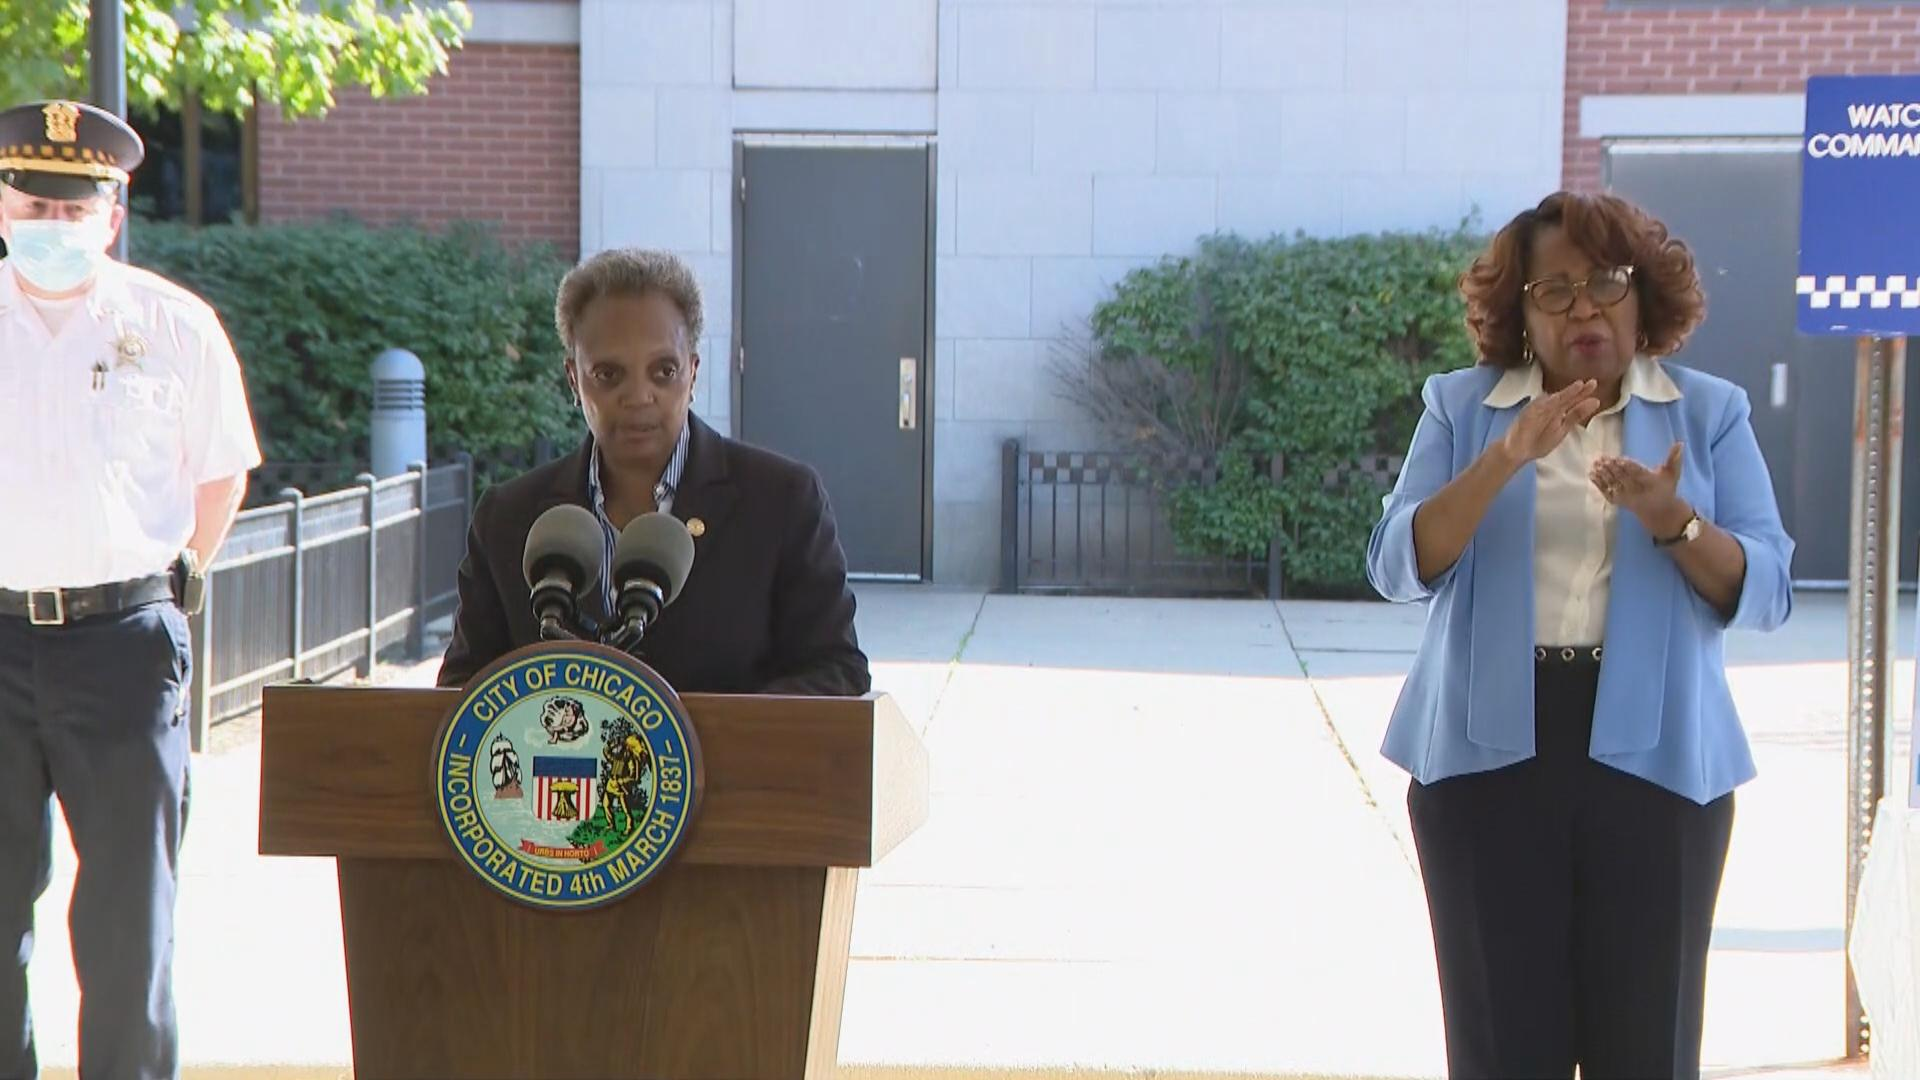 Mayor Lori Lightfoot speaks Thursday, Aug. 20, 2020 at a press conference about the Chicago Police Department expanding its community policing initiative. (WTTW News)